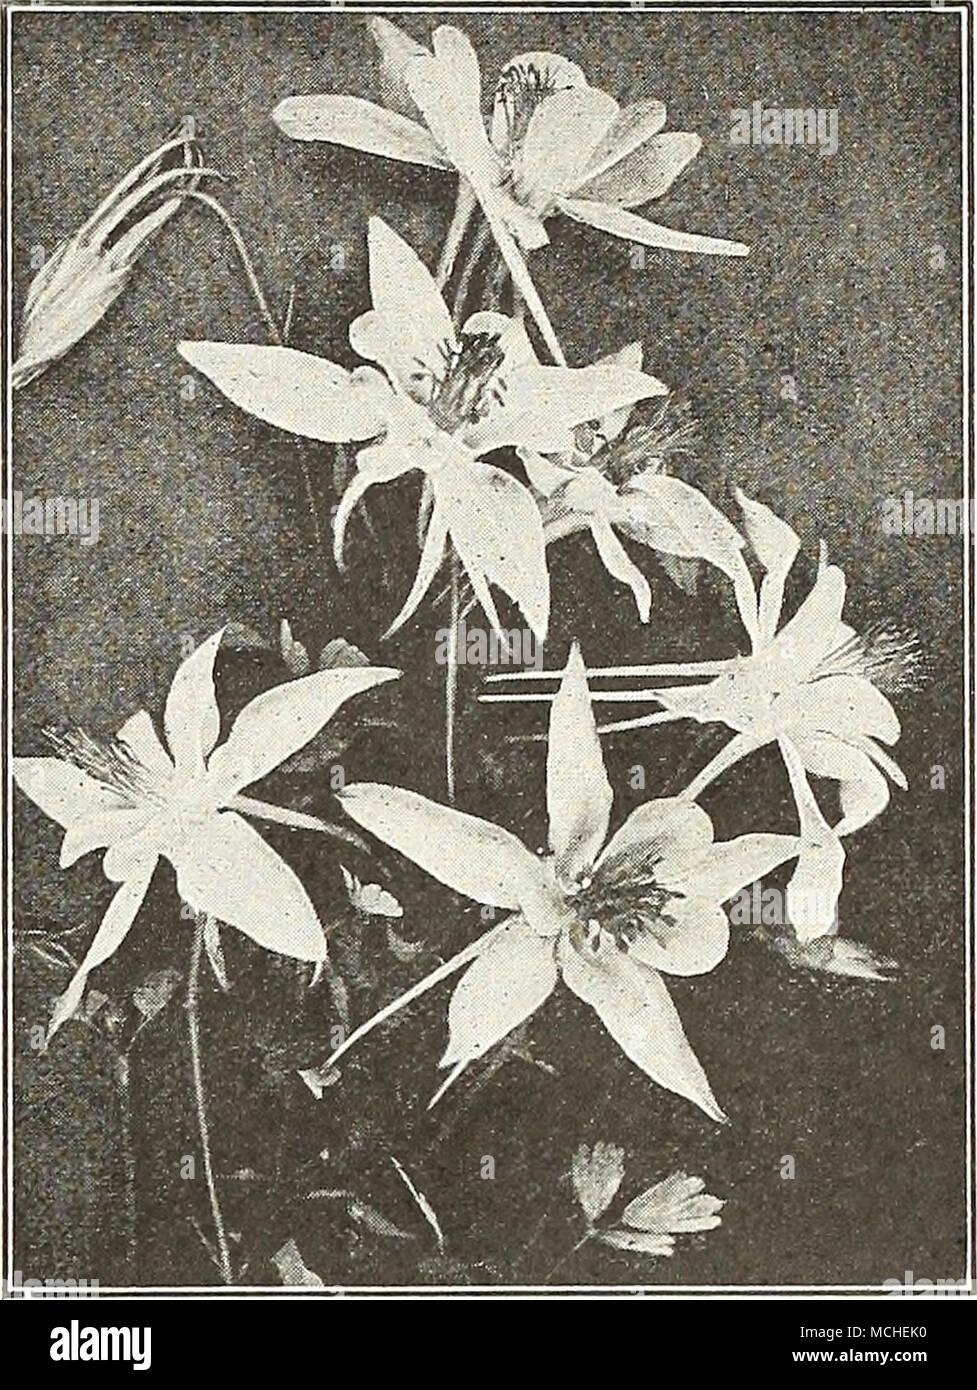 Dreers long spurred aquilegia or columbine anthericum st brunos a charming border plant with rush like foliage and 18 to 24 inch high racemes of small white lily like flowers izmirmasajfo Image collections